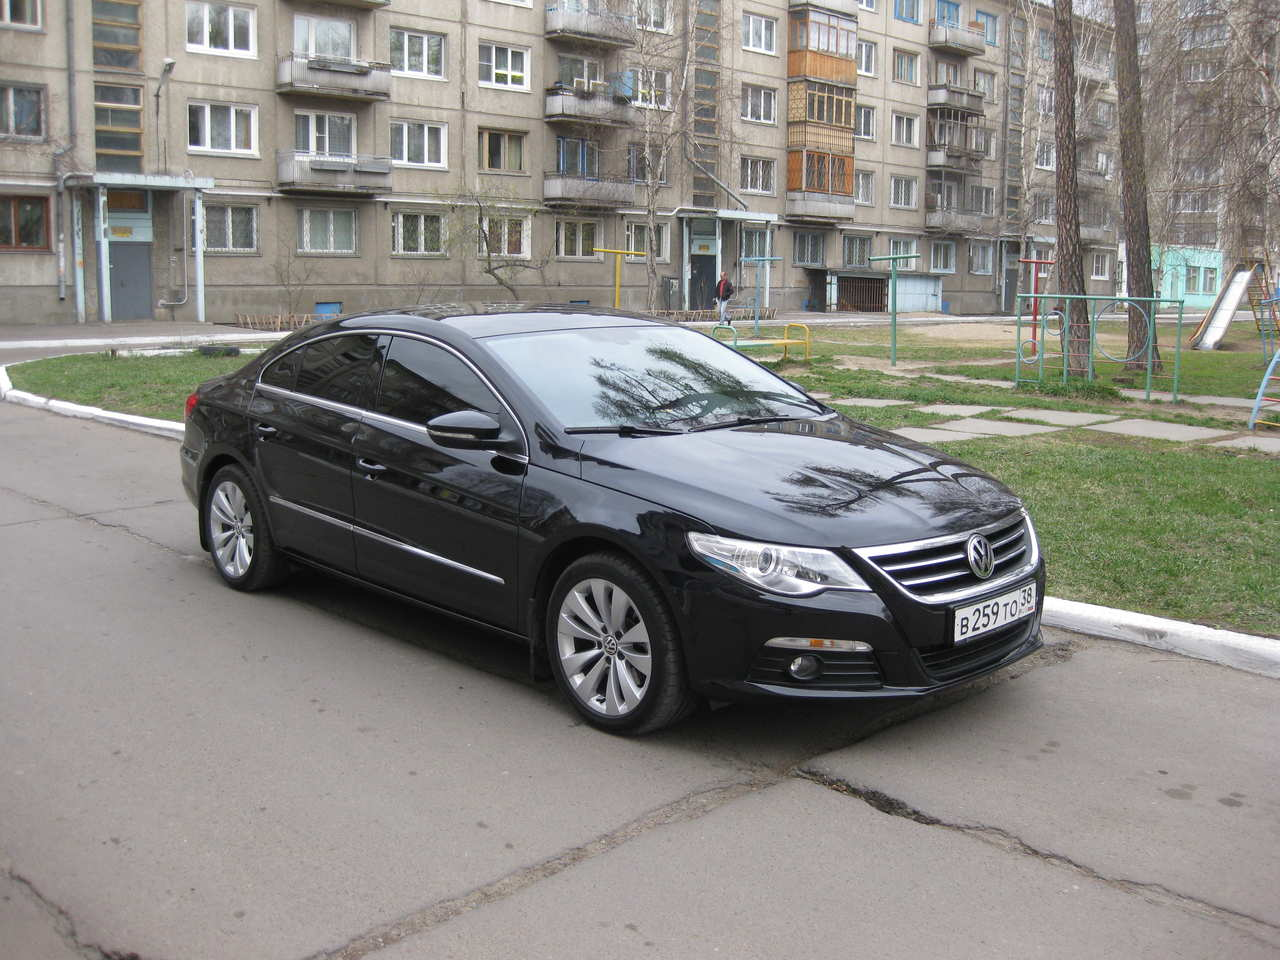 2009 volkswagen passat cc pictures gasoline ff. Black Bedroom Furniture Sets. Home Design Ideas